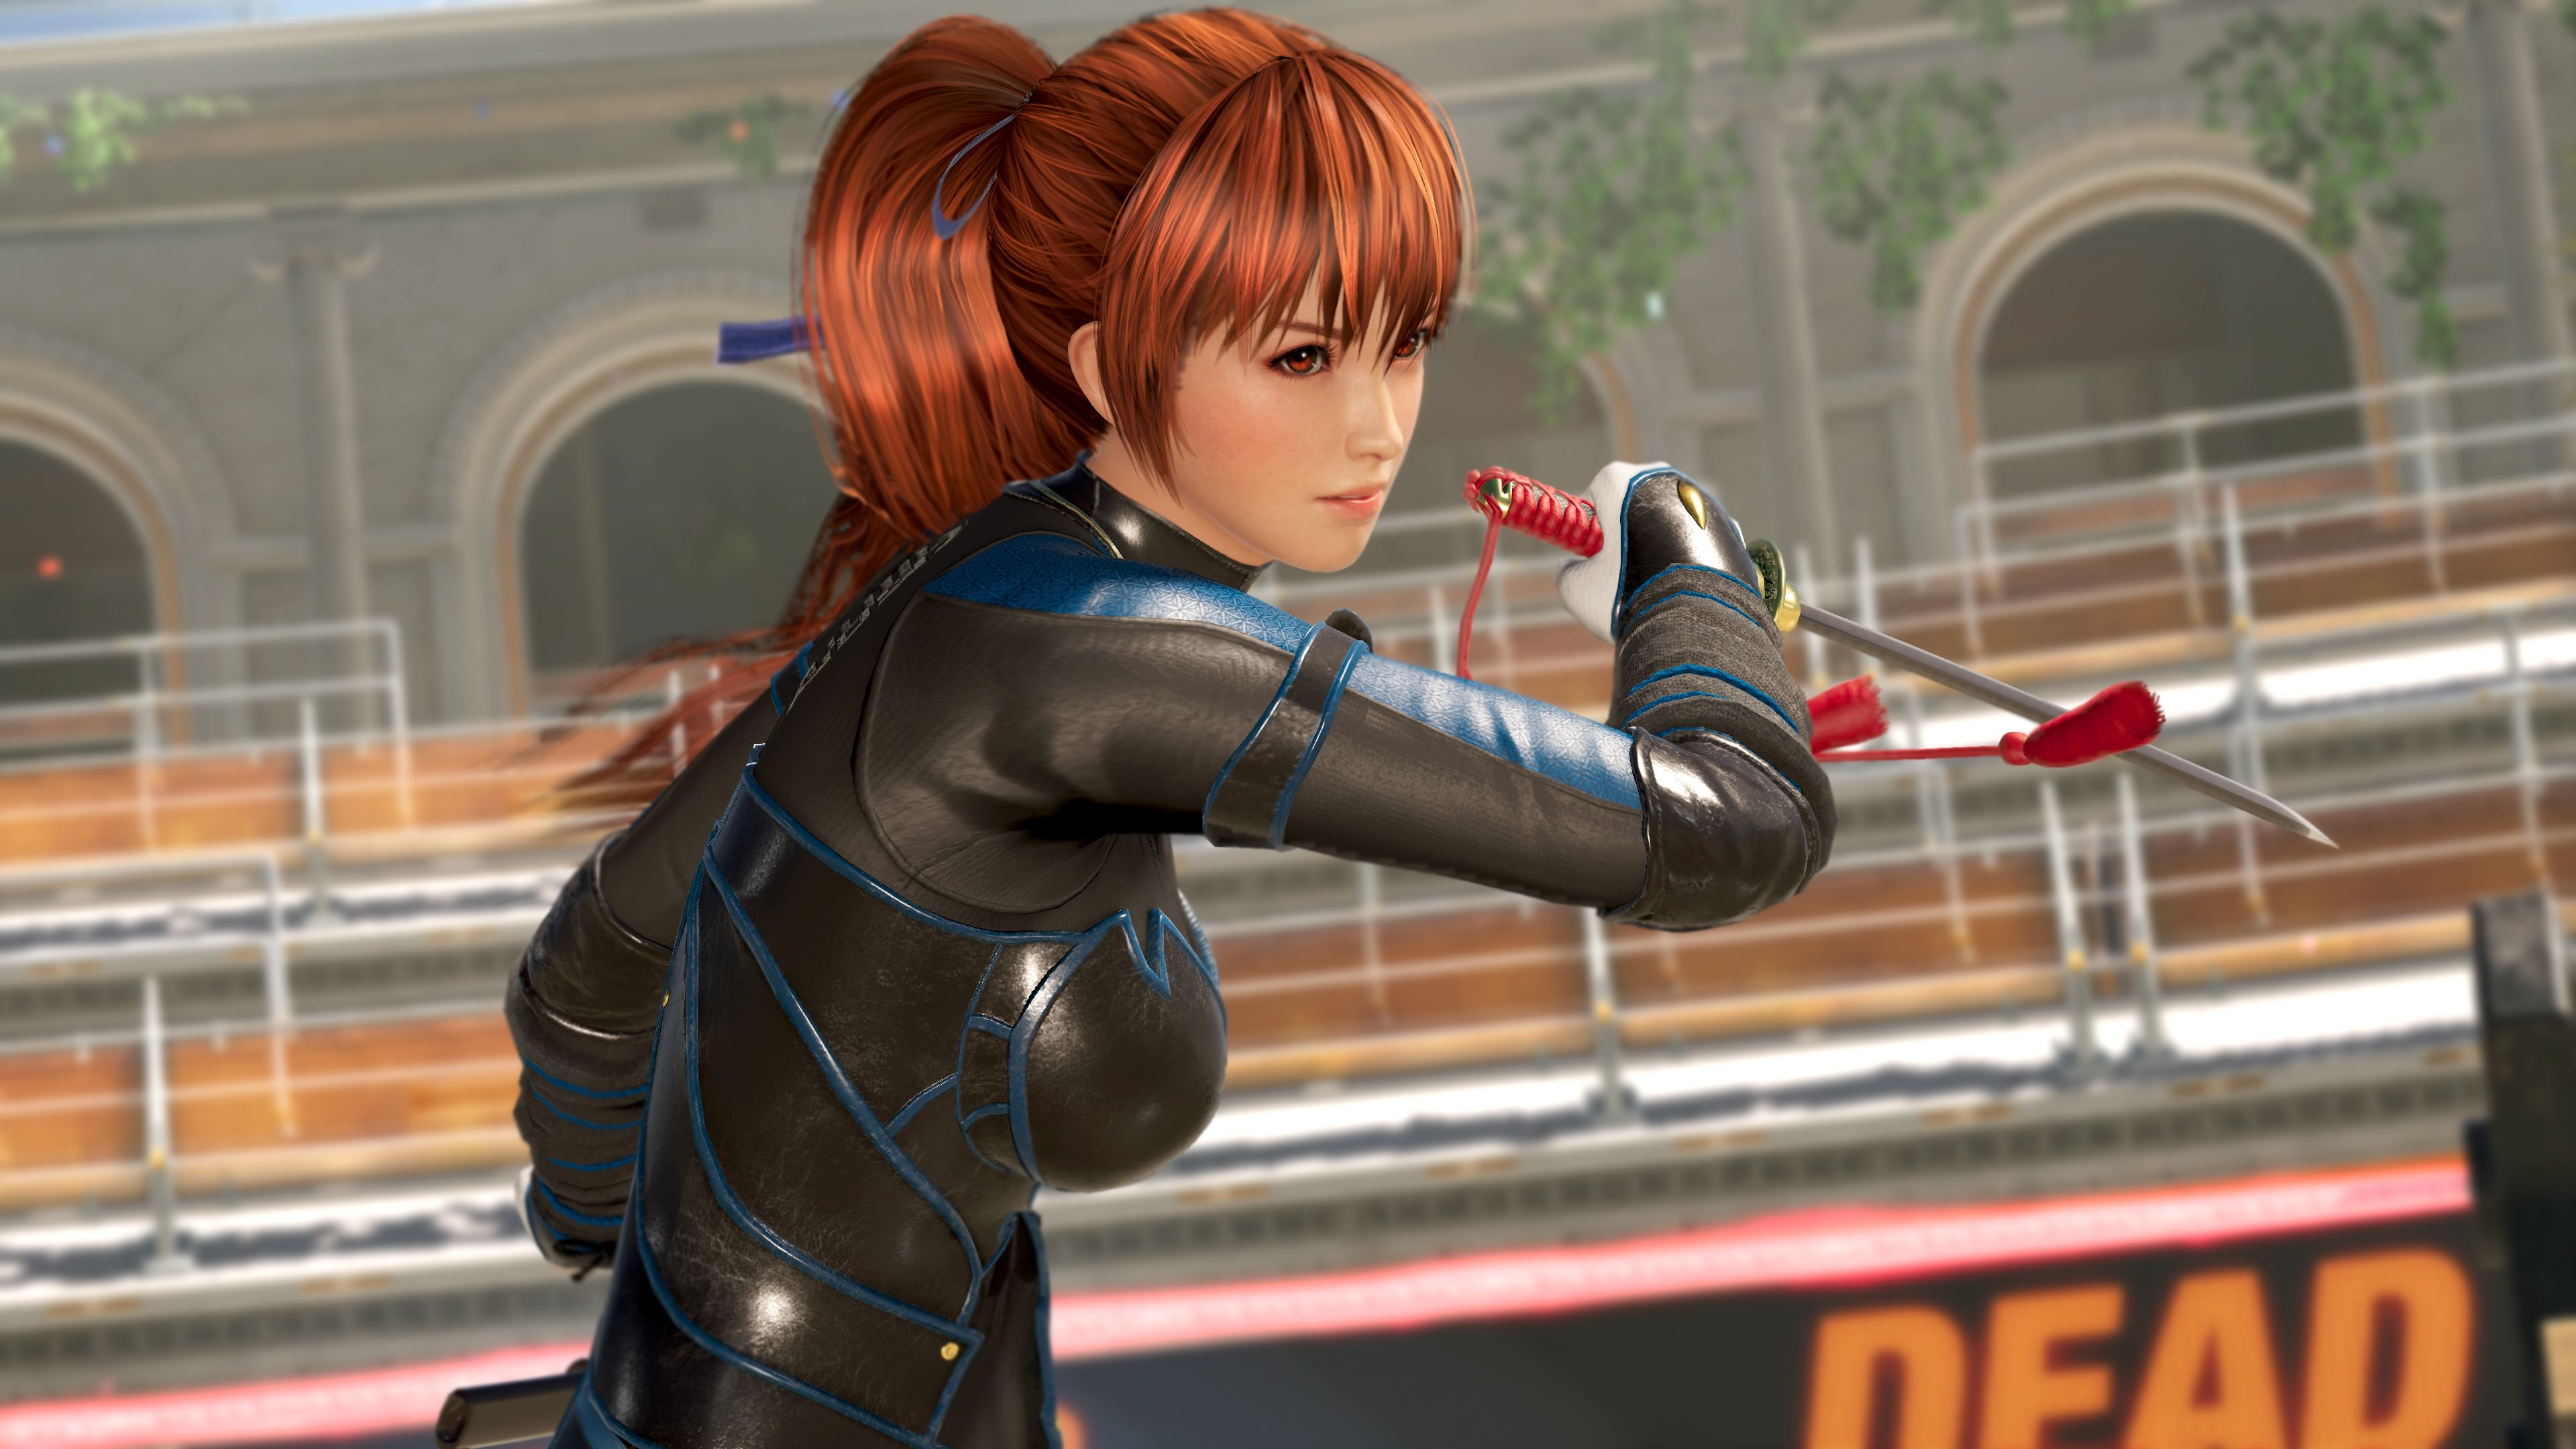 2560x1440 Dead Or Alive 6 Game 19 1440p Resolution Wallpaper Hd Games 4k Wallpapers Images Photos And Background